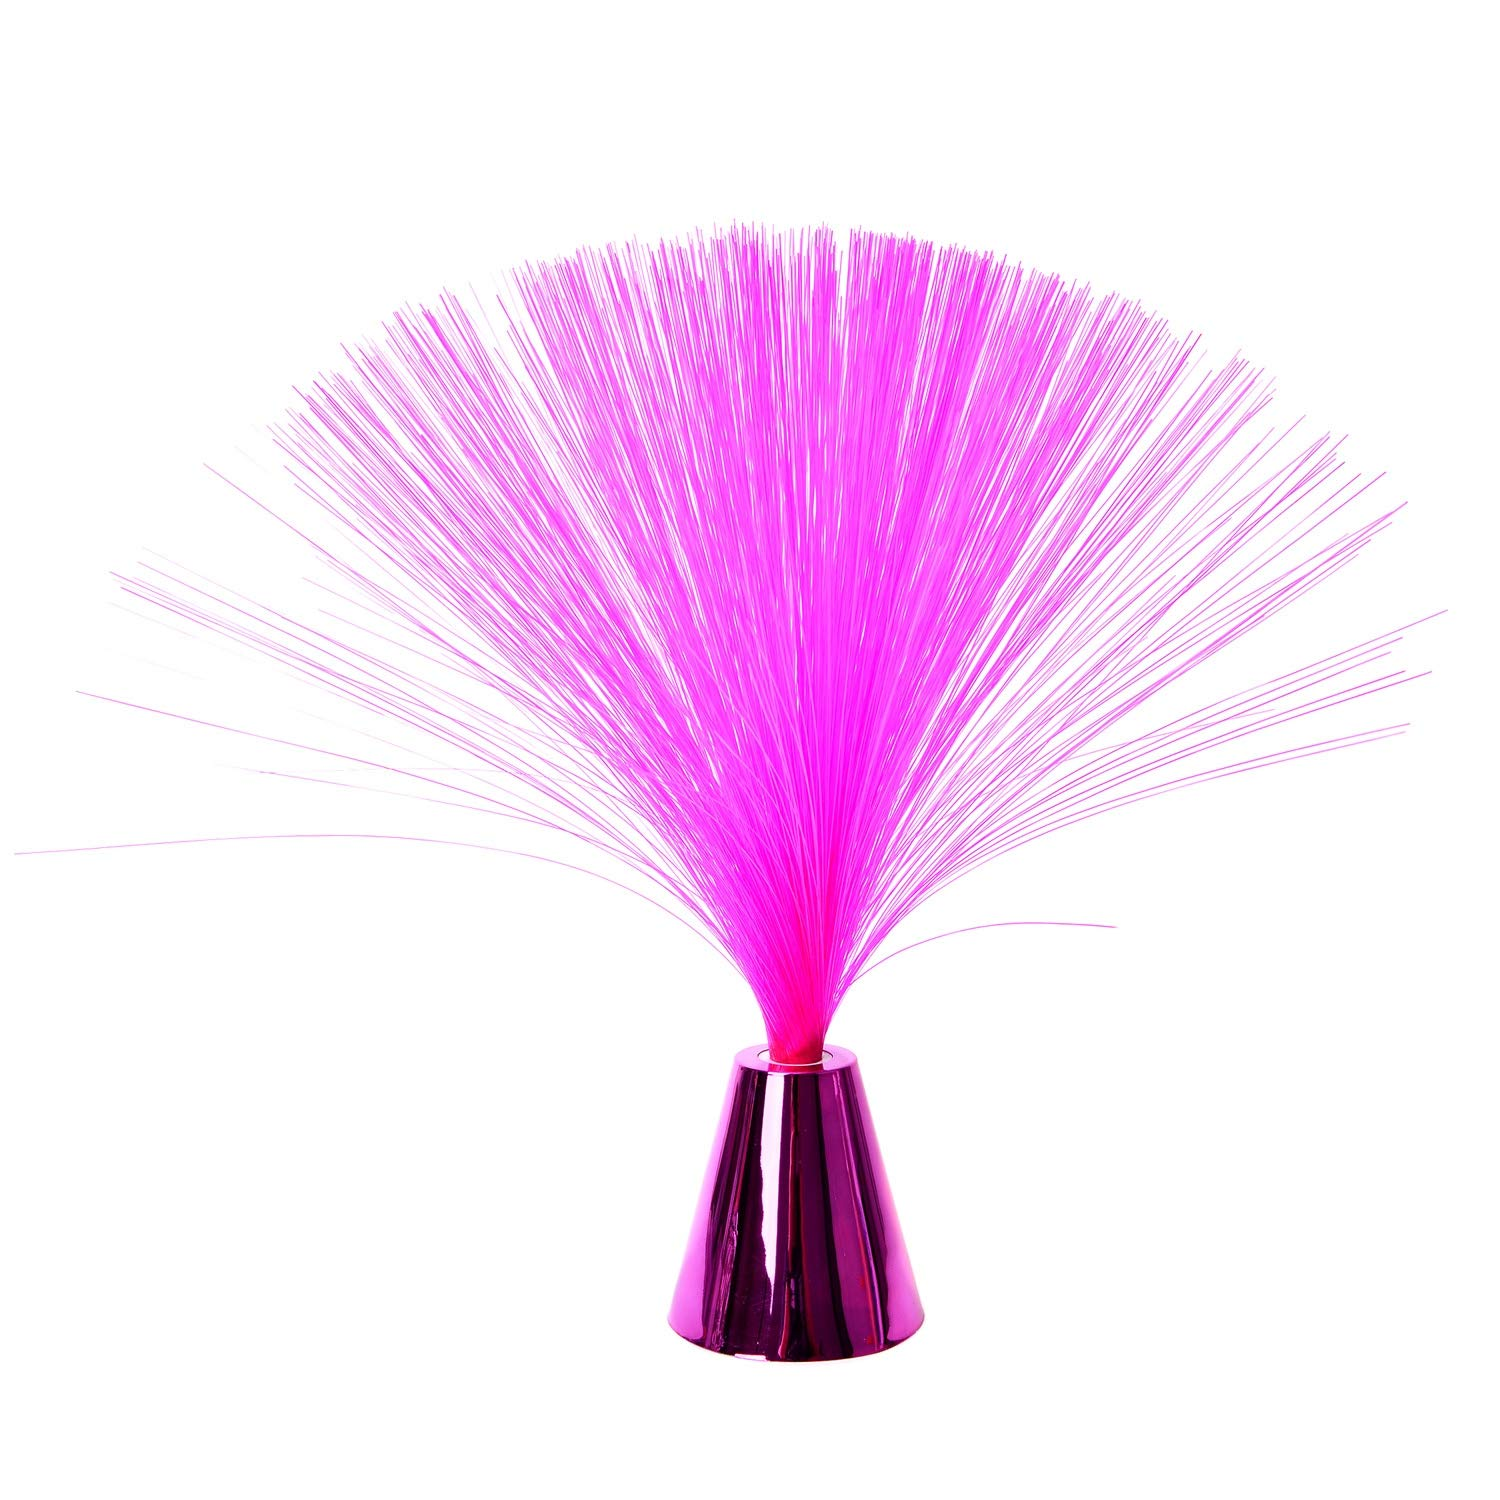 Shop LC Pink Mini Fiber Optic Light Requires 3AAA Batteries Not Included